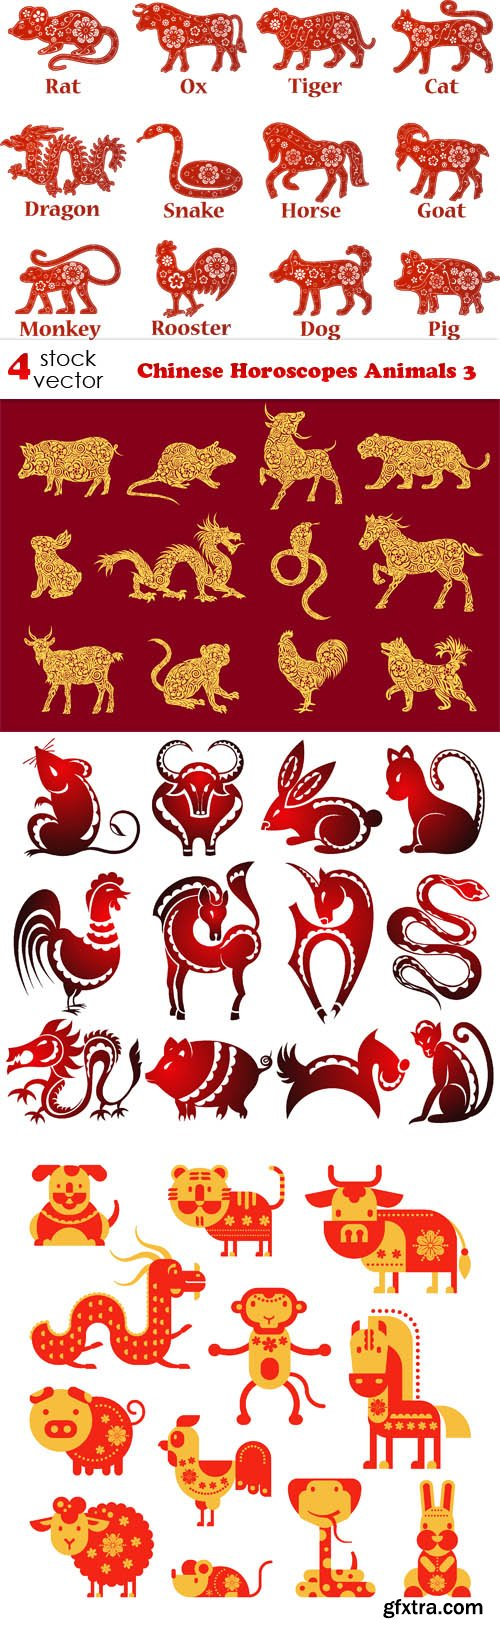 Vectors - Chinese Horoscopes Animals 3